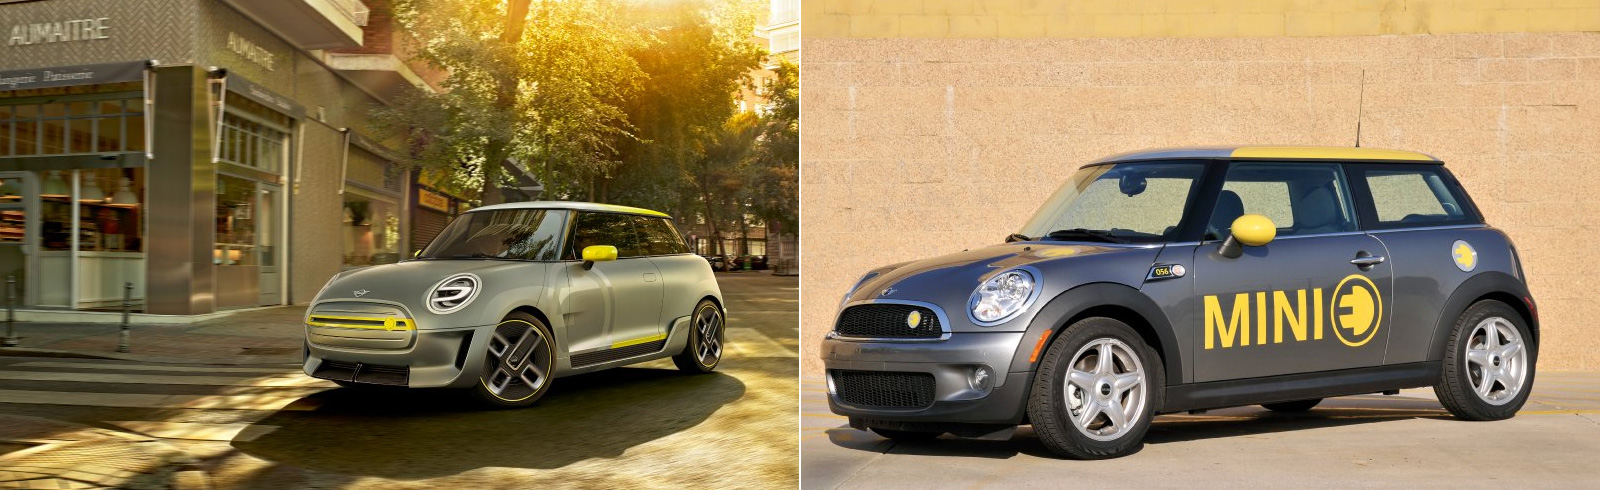 Mini E will be announced in September and will go on sale in early 2020